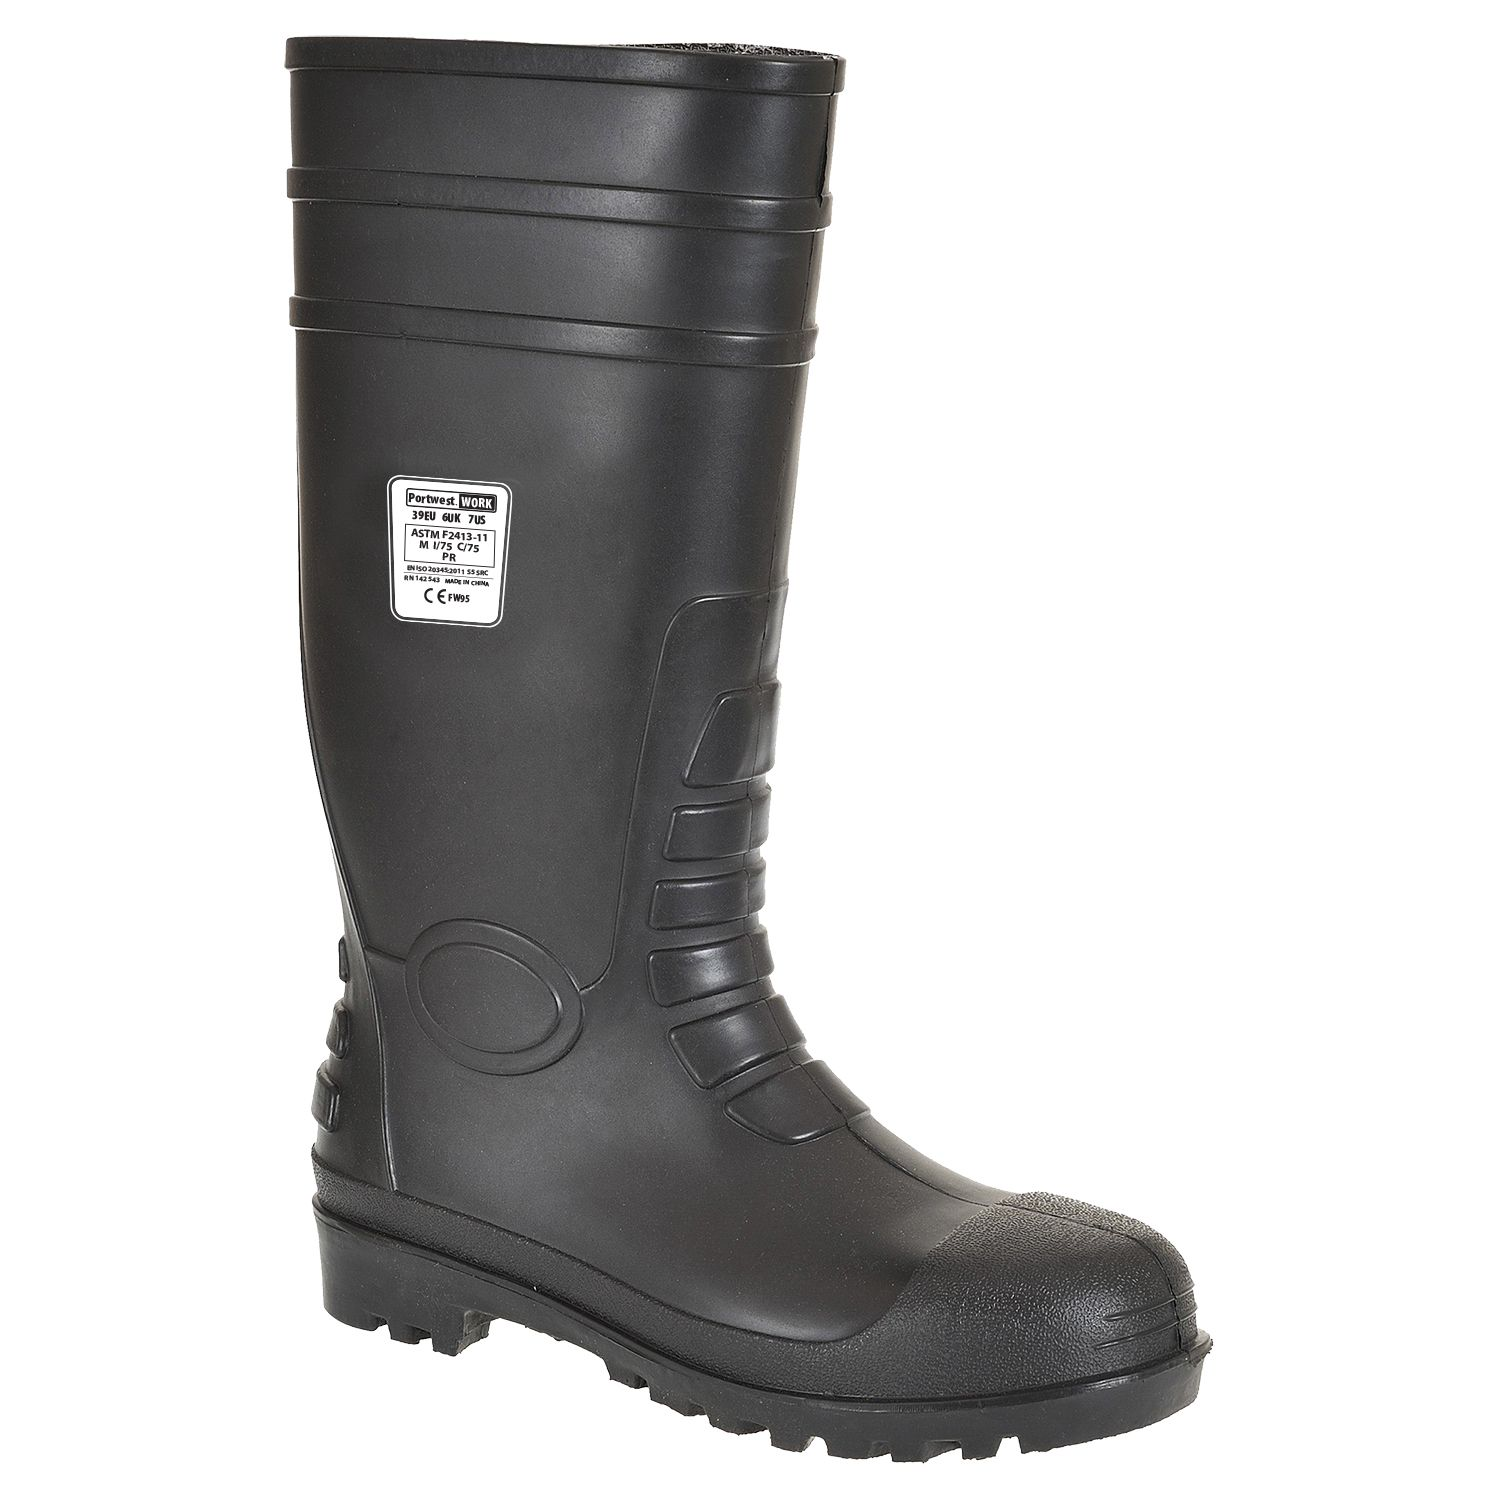 Portwest FW95 Total Safety PVC Boots